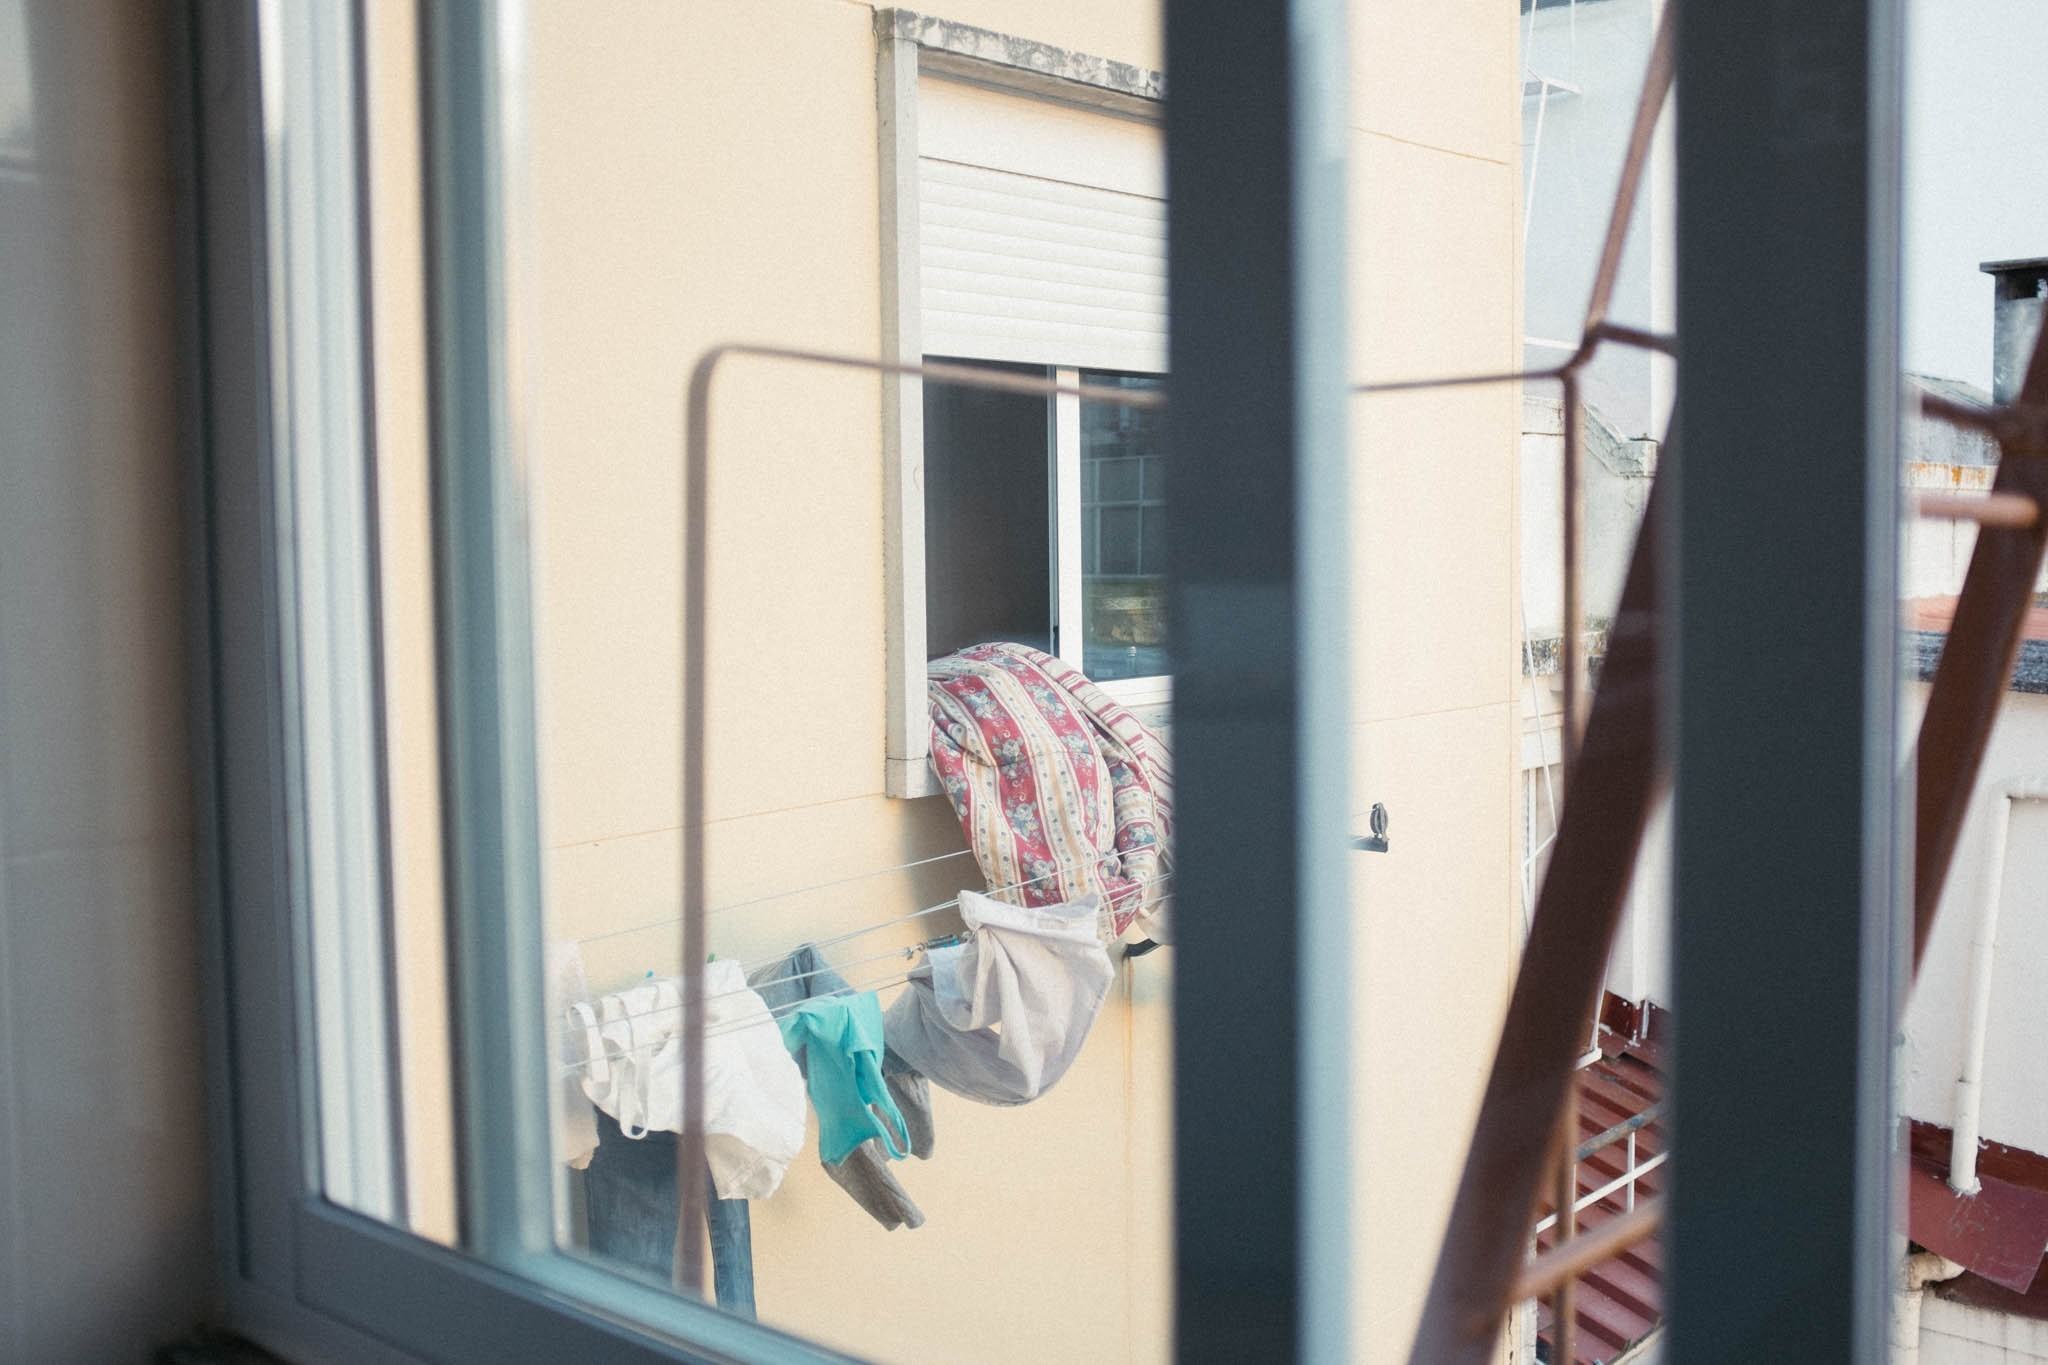 Neighboors' laundry.